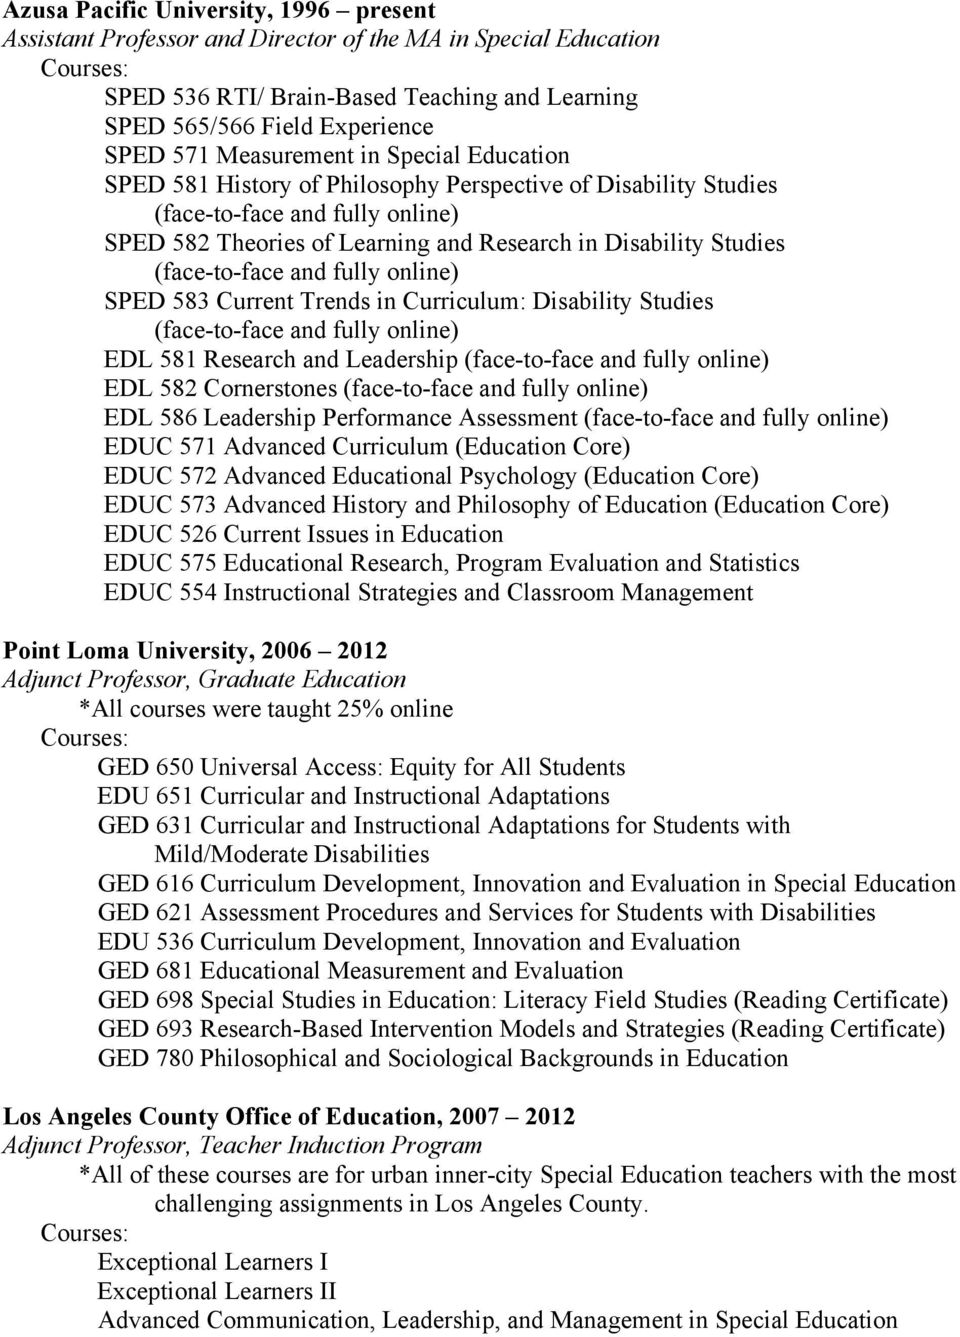 Curriculum: Disability Studies EDL 581 Research and Leadership EDL 582 Cornerstones EDL 586 Leadership Performance Assessment EDUC 571 Advanced Curriculum (Education Core) EDUC 572 Advanced